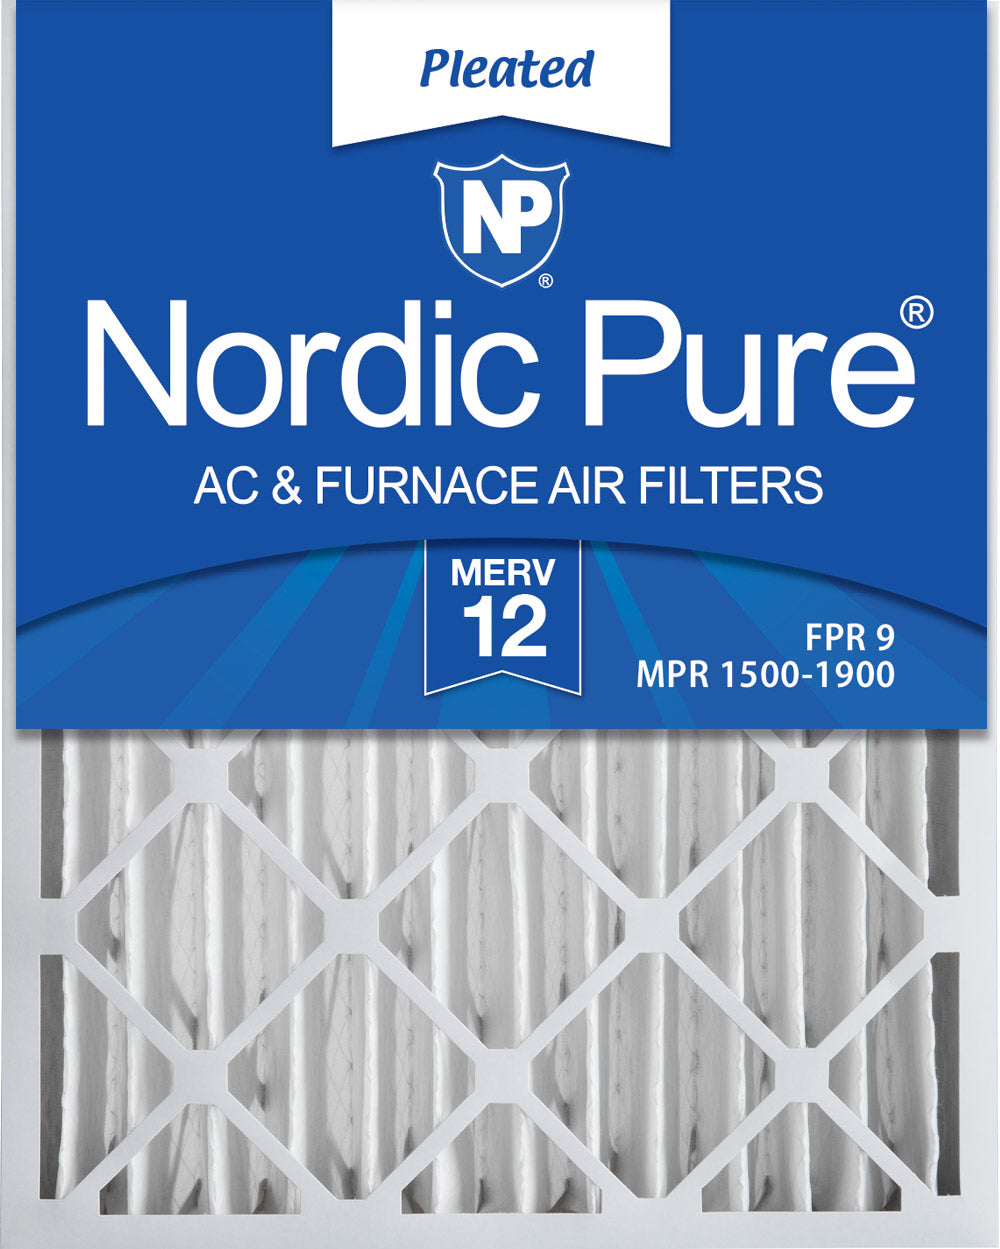 20x25x4 (3 5/8) Pleated MERV 12 Air Filters 1 Pack